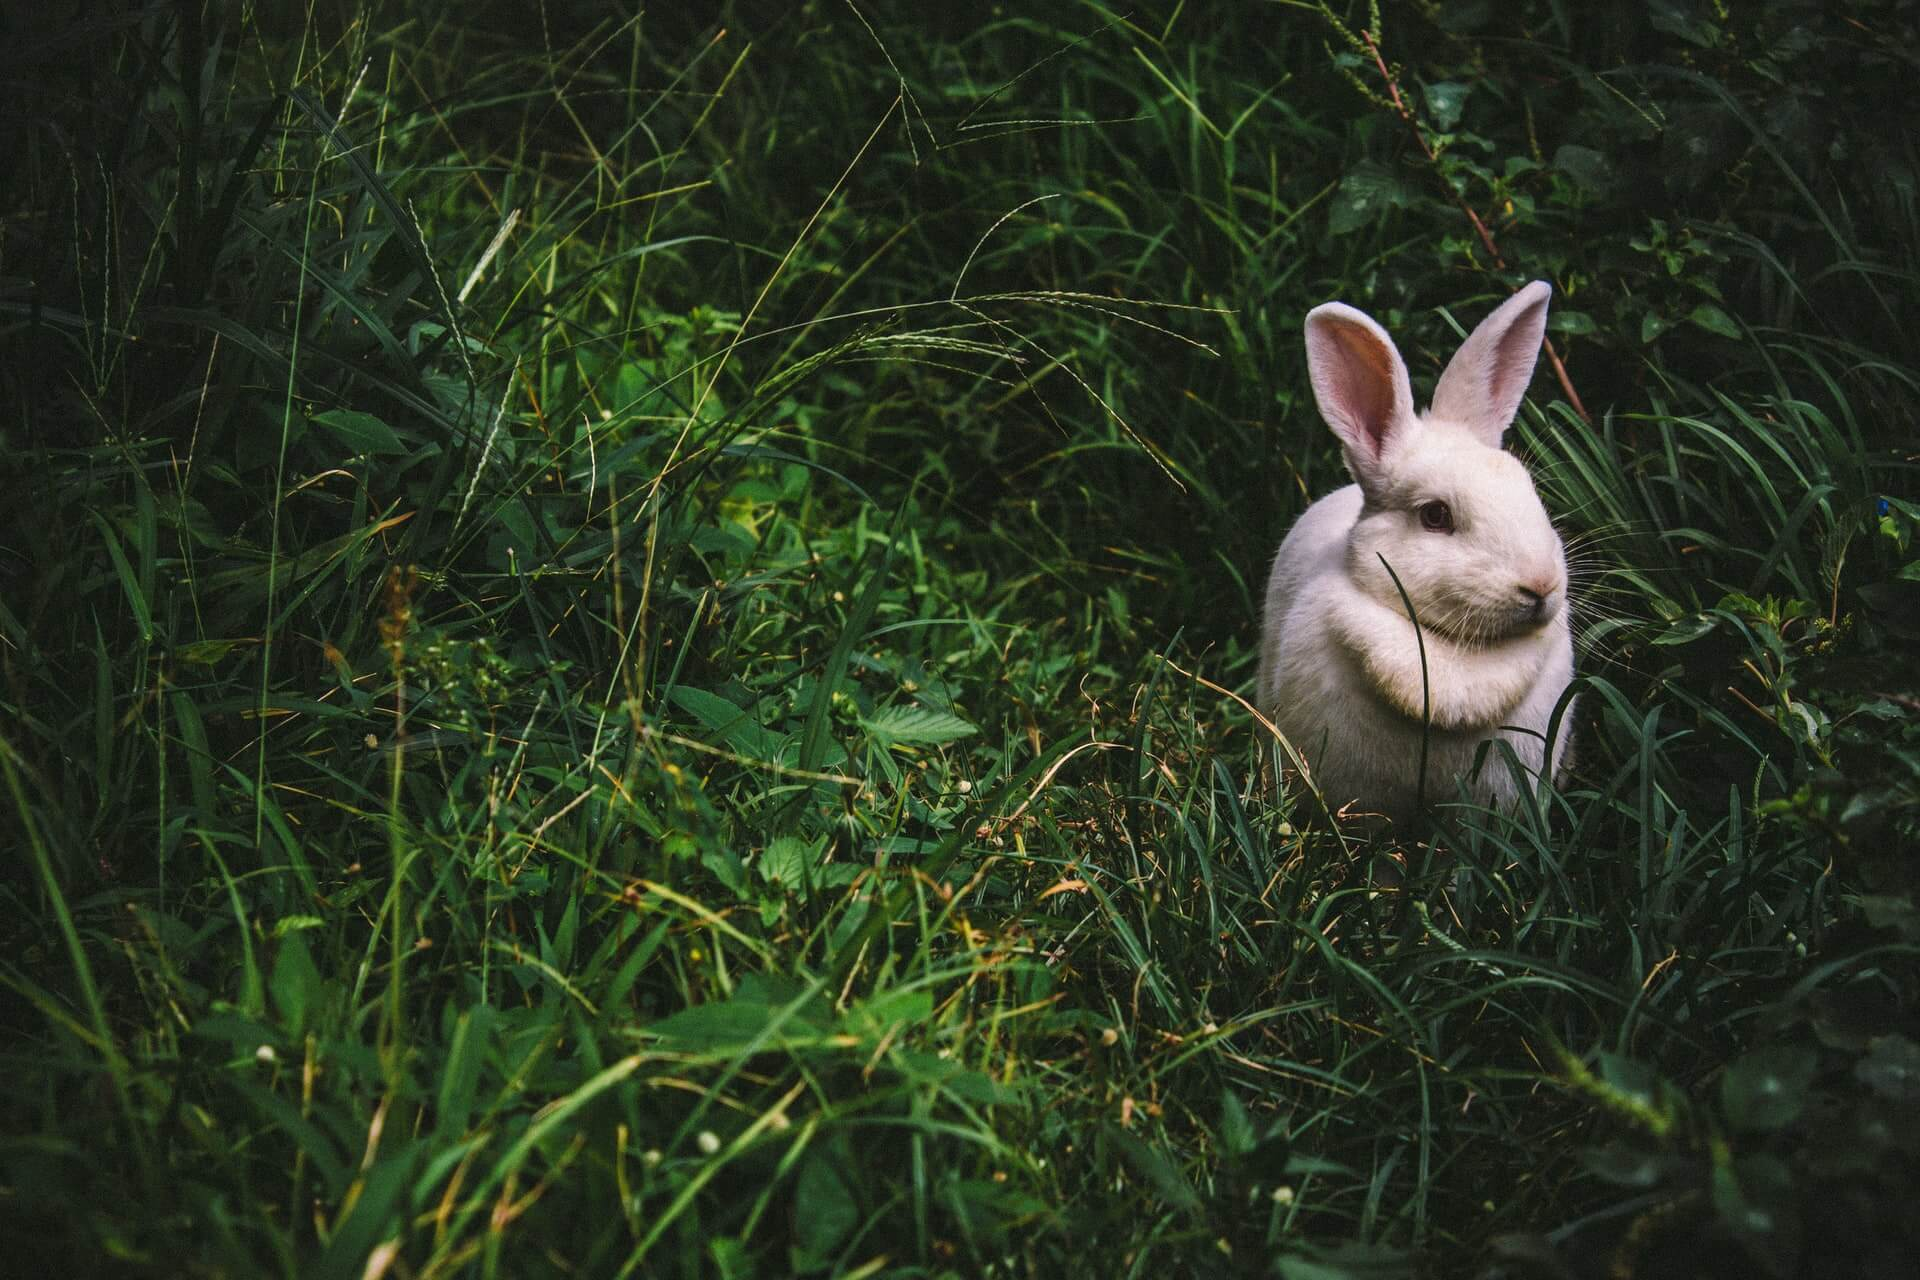 A white rabbit in the grass symbolising the psychedelic journey for people taking acid for the first time